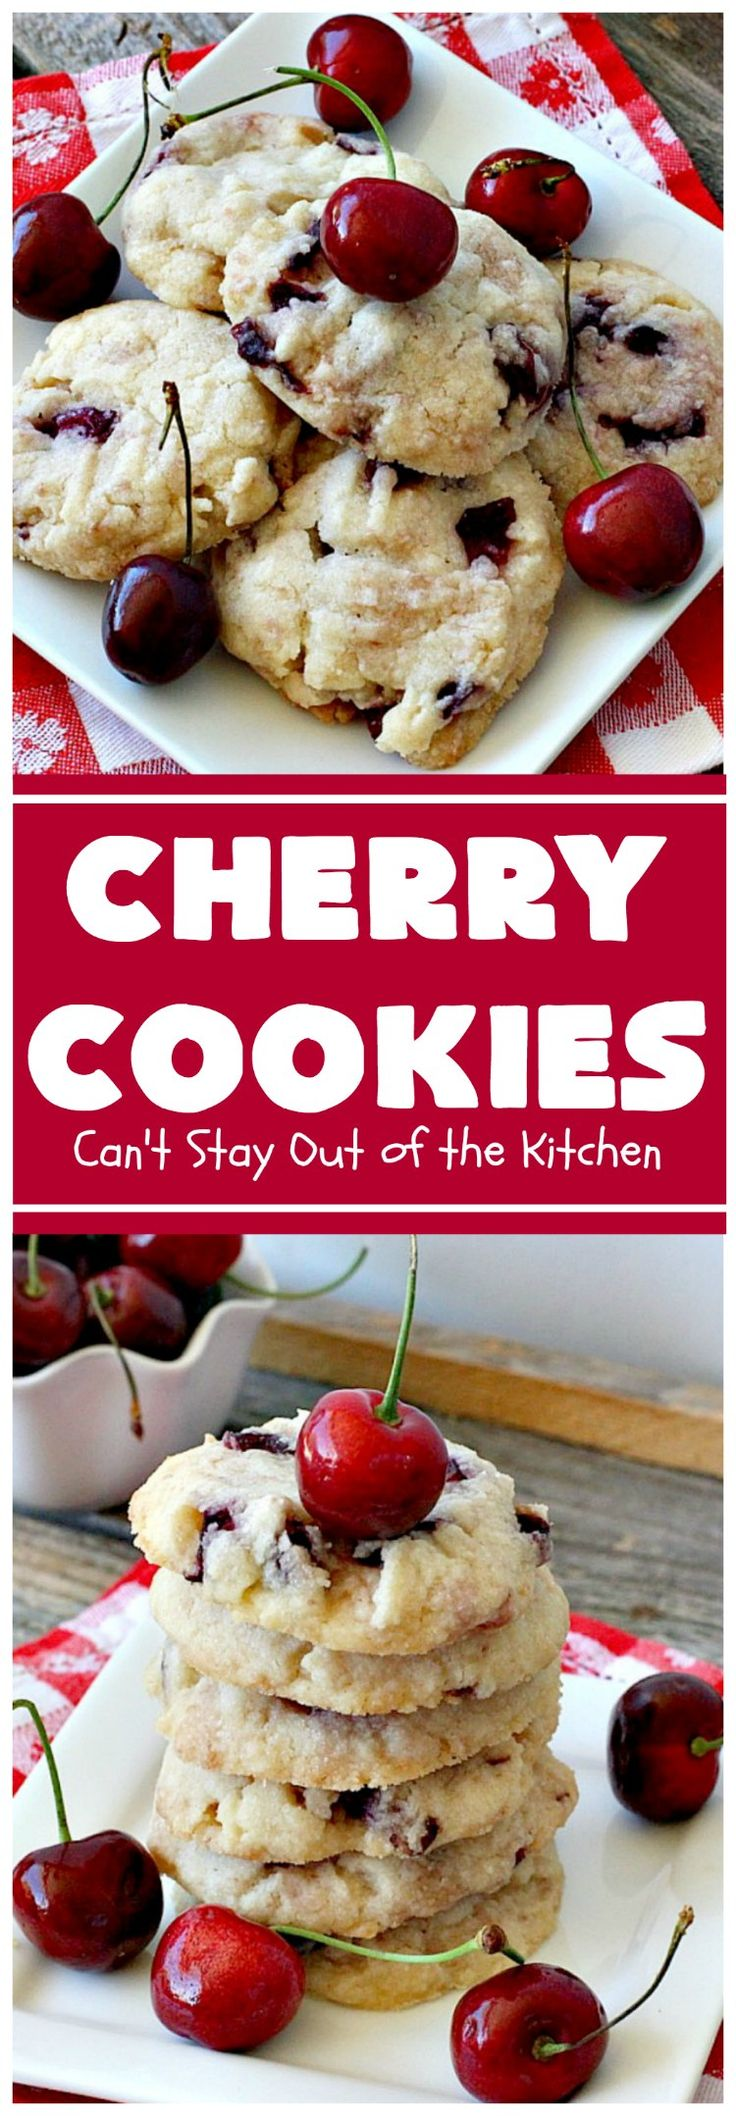 Cherry Cookies | Can't Stay Out of the Kitchen| these fantastic #cookies use fresh #cherries & #almond extract in a #sugarcookie dough. Perfect for summer treats when cherries are in season. #dessert